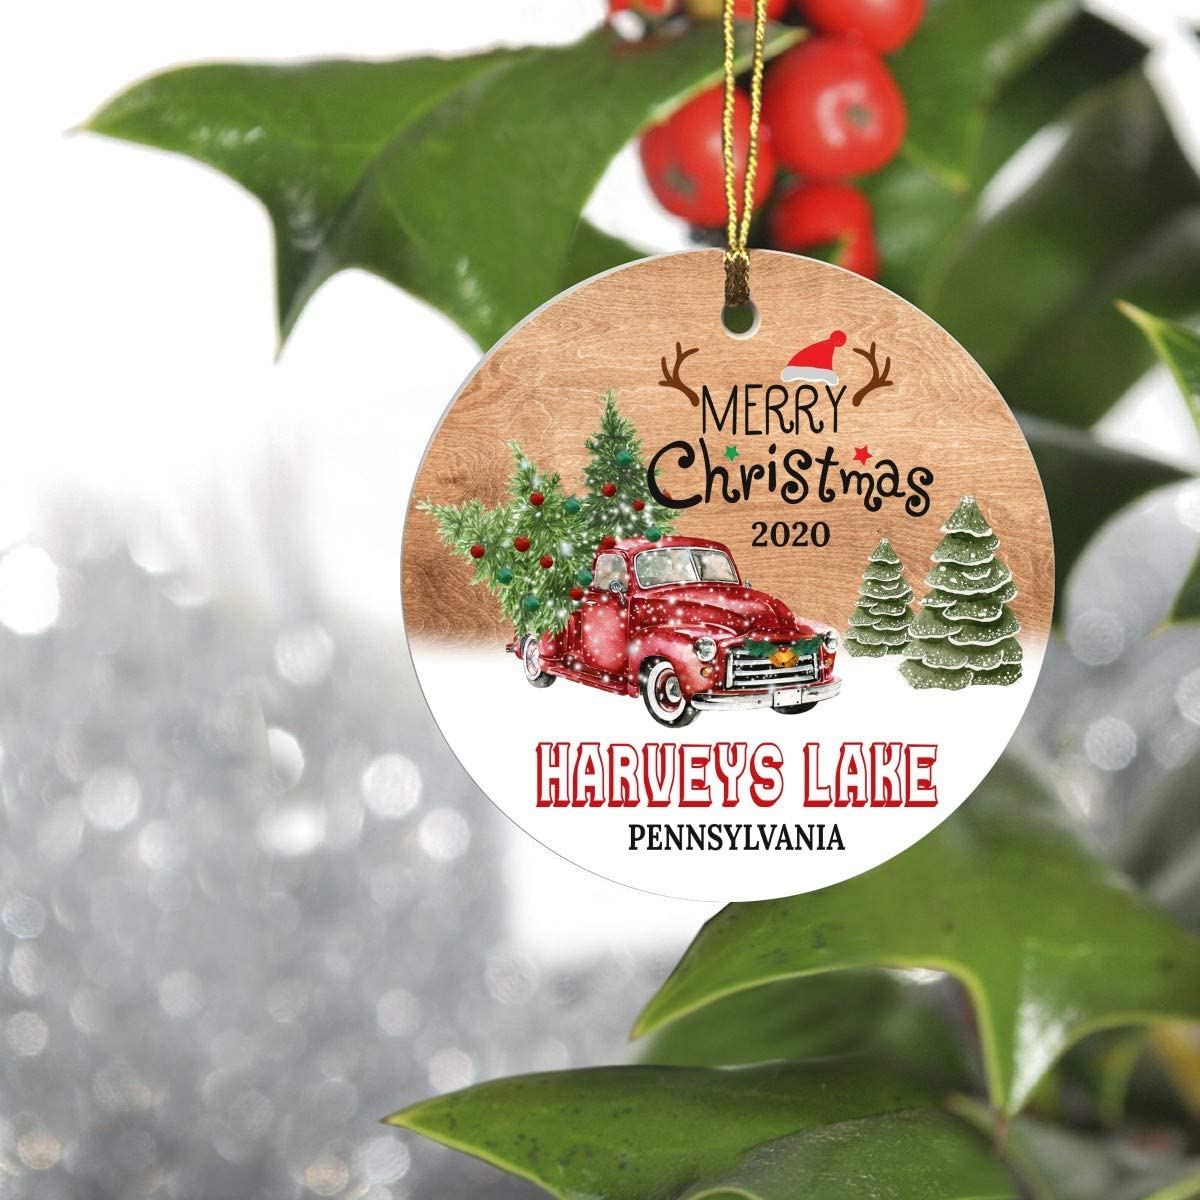 """Merry Christmas Tree Decorations Ornaments 2020 - Ornament Hometown Harveys Lake Pennsylvania PA State - Keepsake Gift Ideas Ornament 3"""" For Family, Friend And Housewarming"""